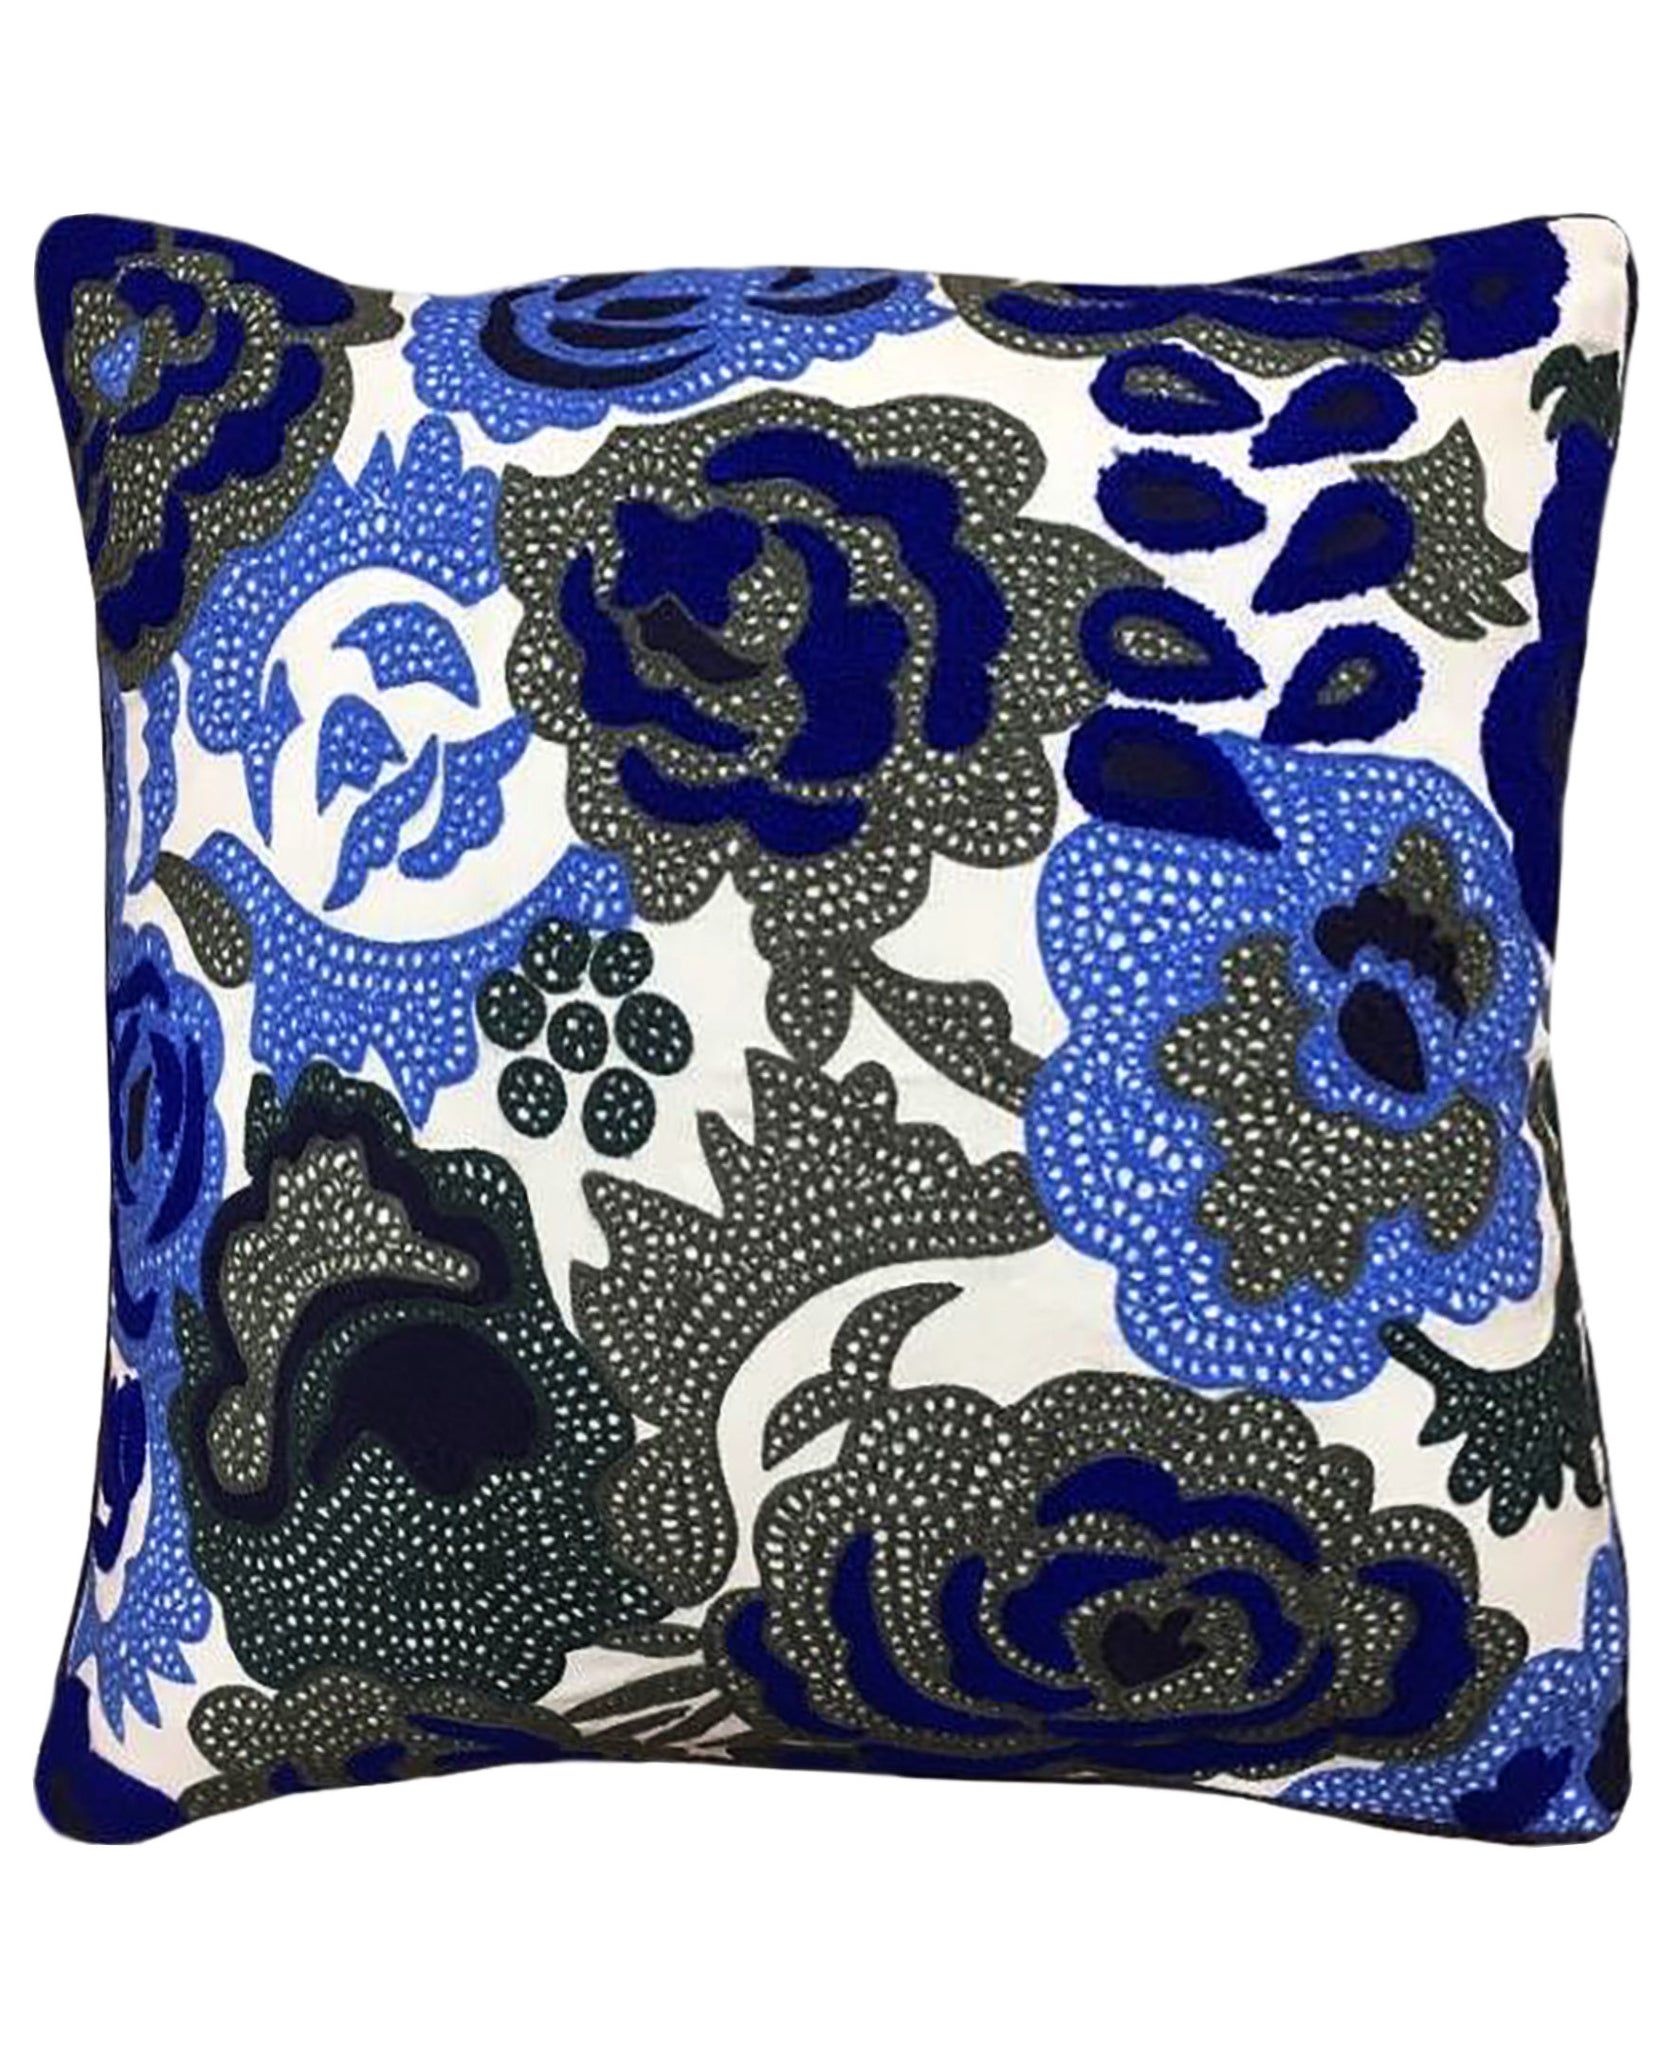 "Blue Rose Embroidery Decorative Pillow, 20"" X 20"""